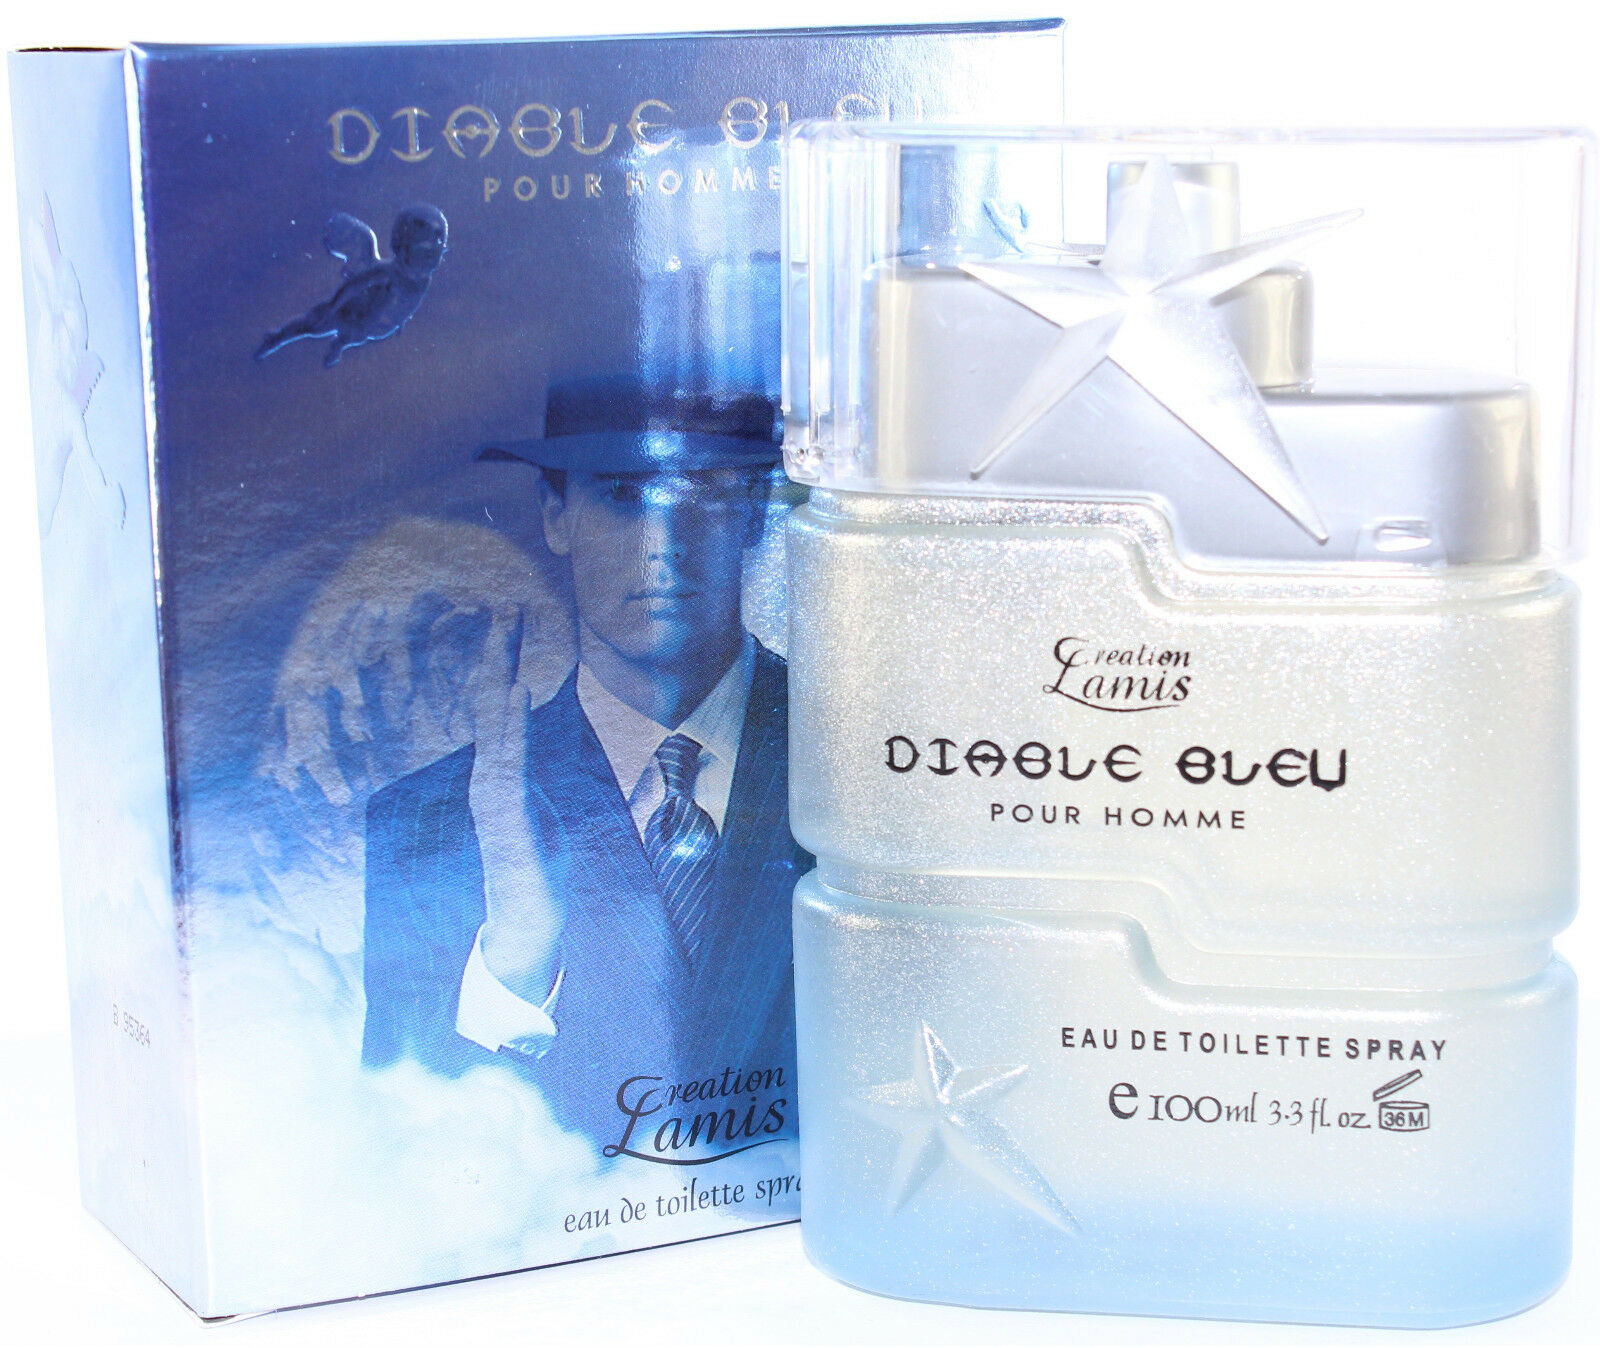 Diable Bleu By Creation Lamis 3.4/3.3 Oz Edt Spray For Men In Box